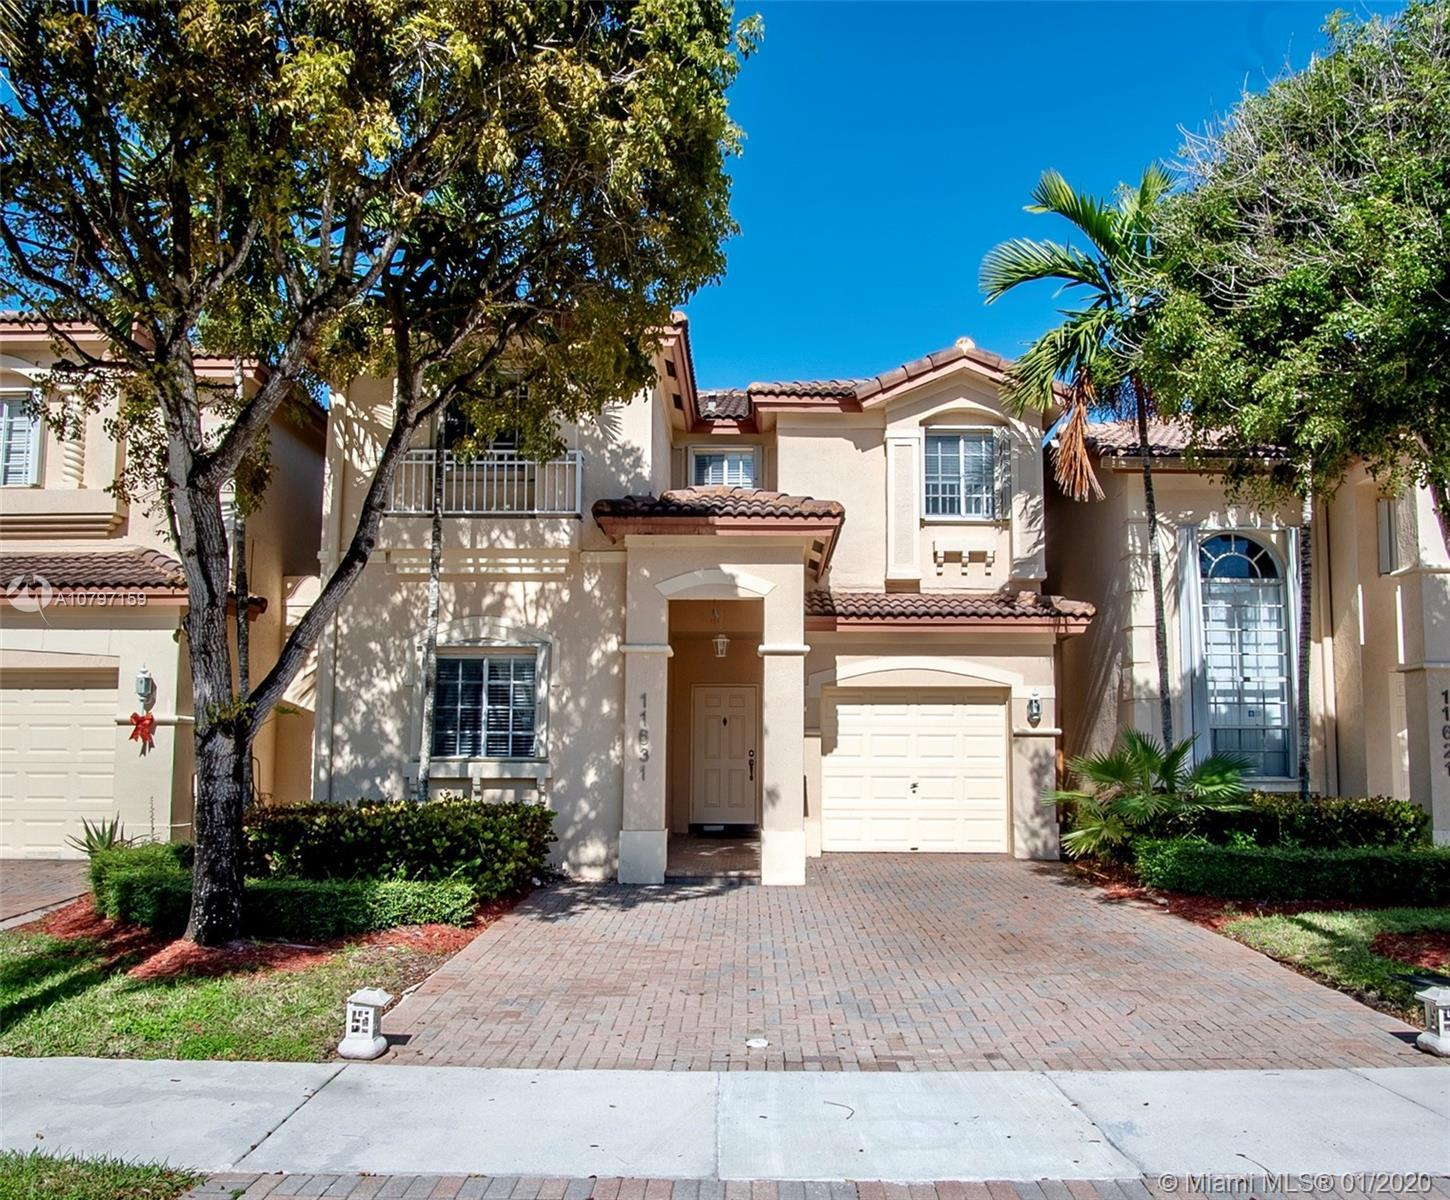 Feel the energy when you walk in with this entirely upgraded, almost new pristine home located in th